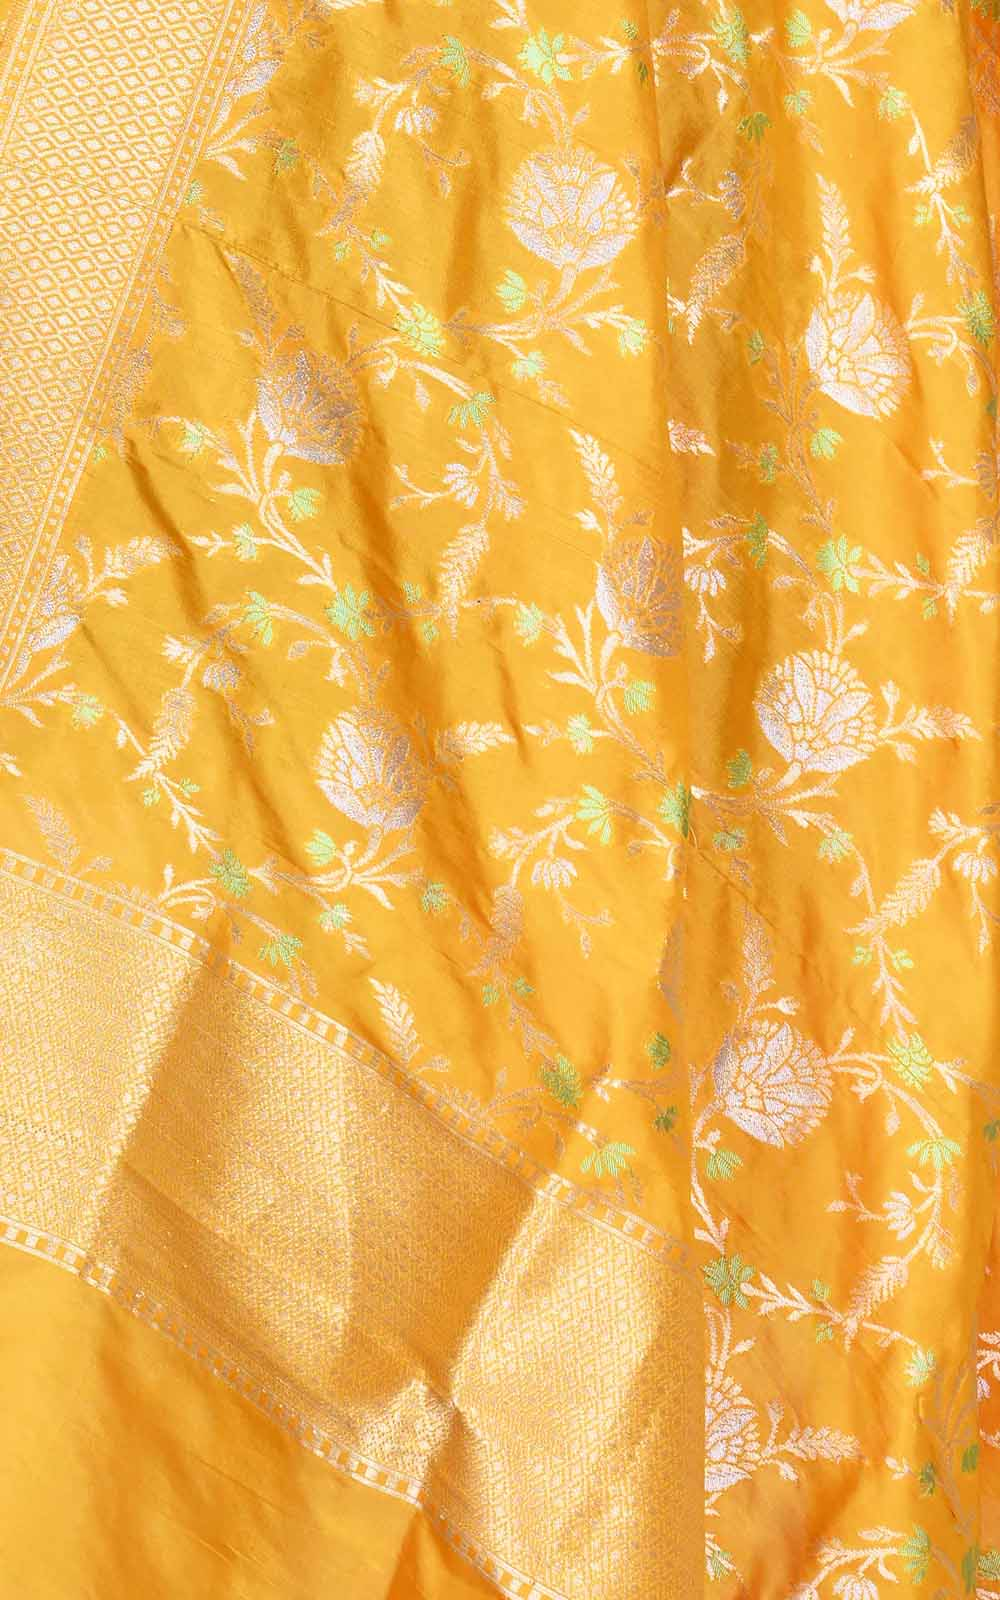 Yellow Katan silk Banarasi dupatta with artistic meenedar floral jaal (2) Close up